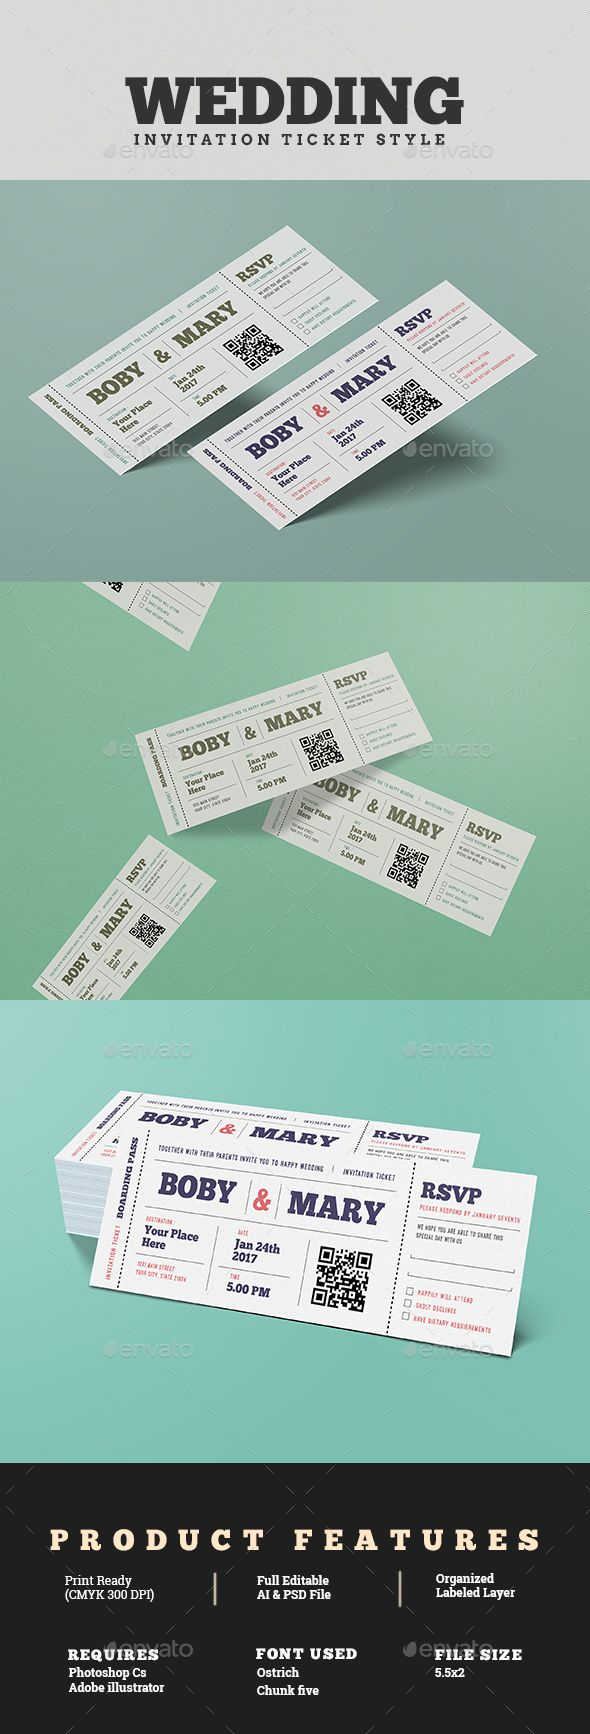 150 best images about ticket templates on pinterest party events ticket design and concerts. Black Bedroom Furniture Sets. Home Design Ideas